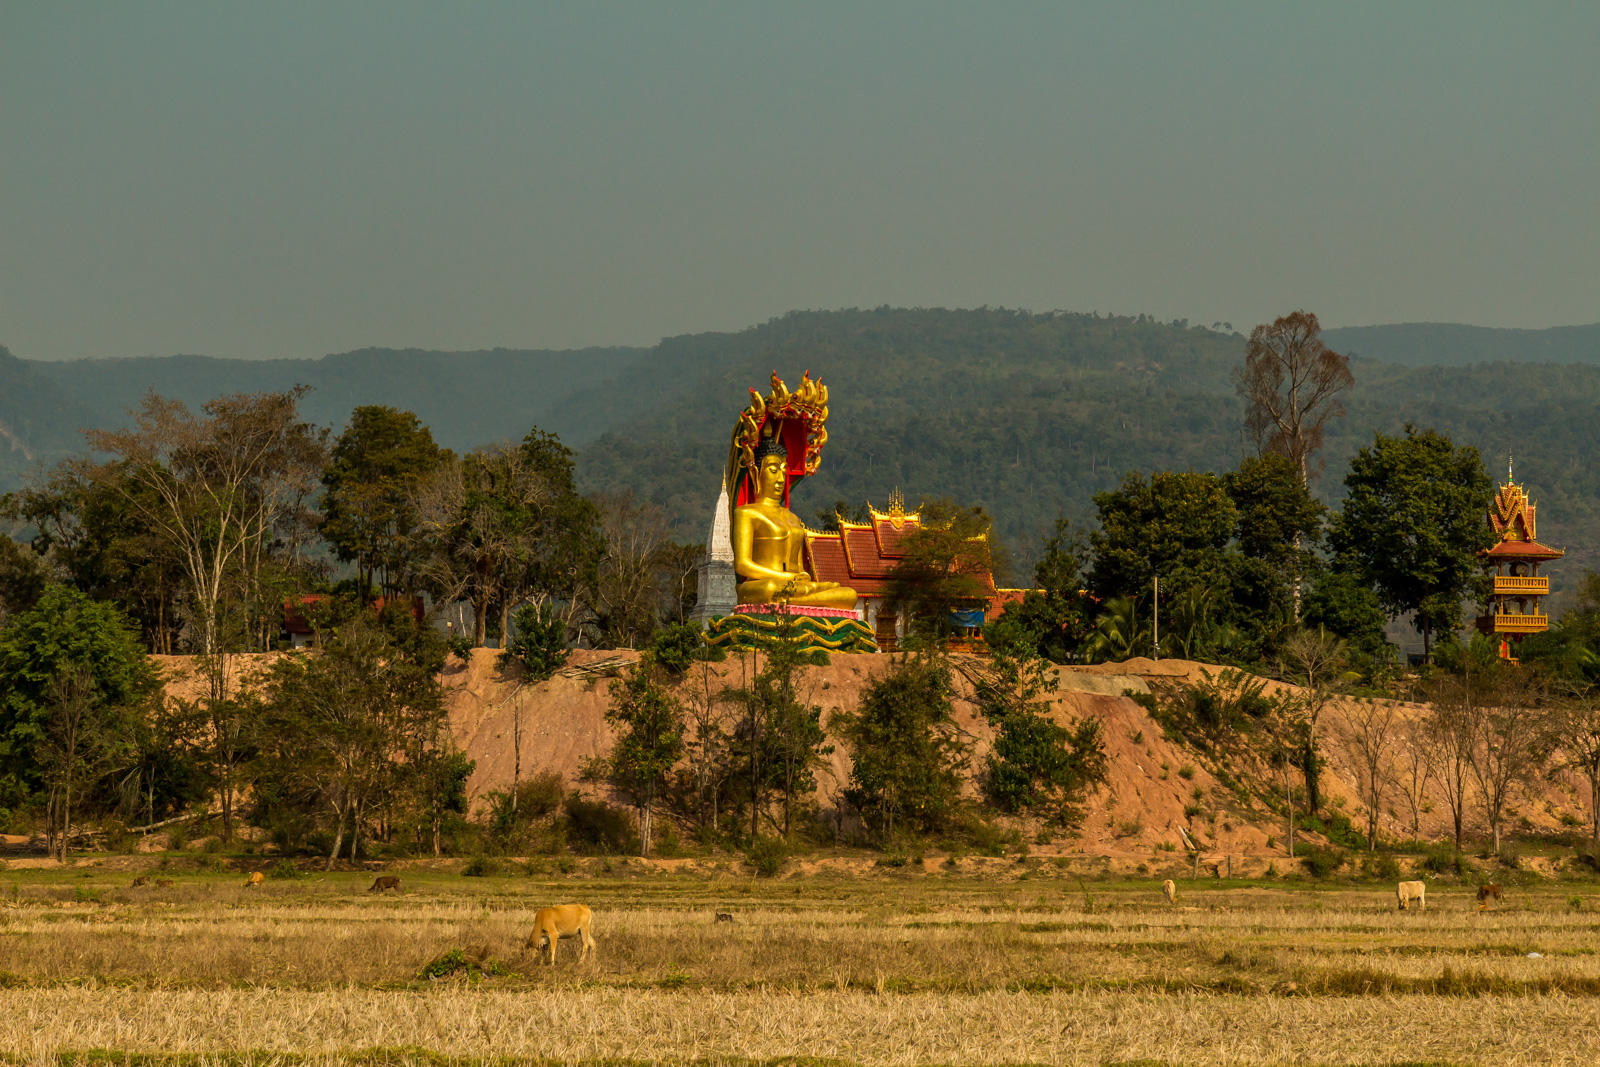 Unlike Cambodia, I had not seen a lot of temples in Laos. There were a few on this ride.